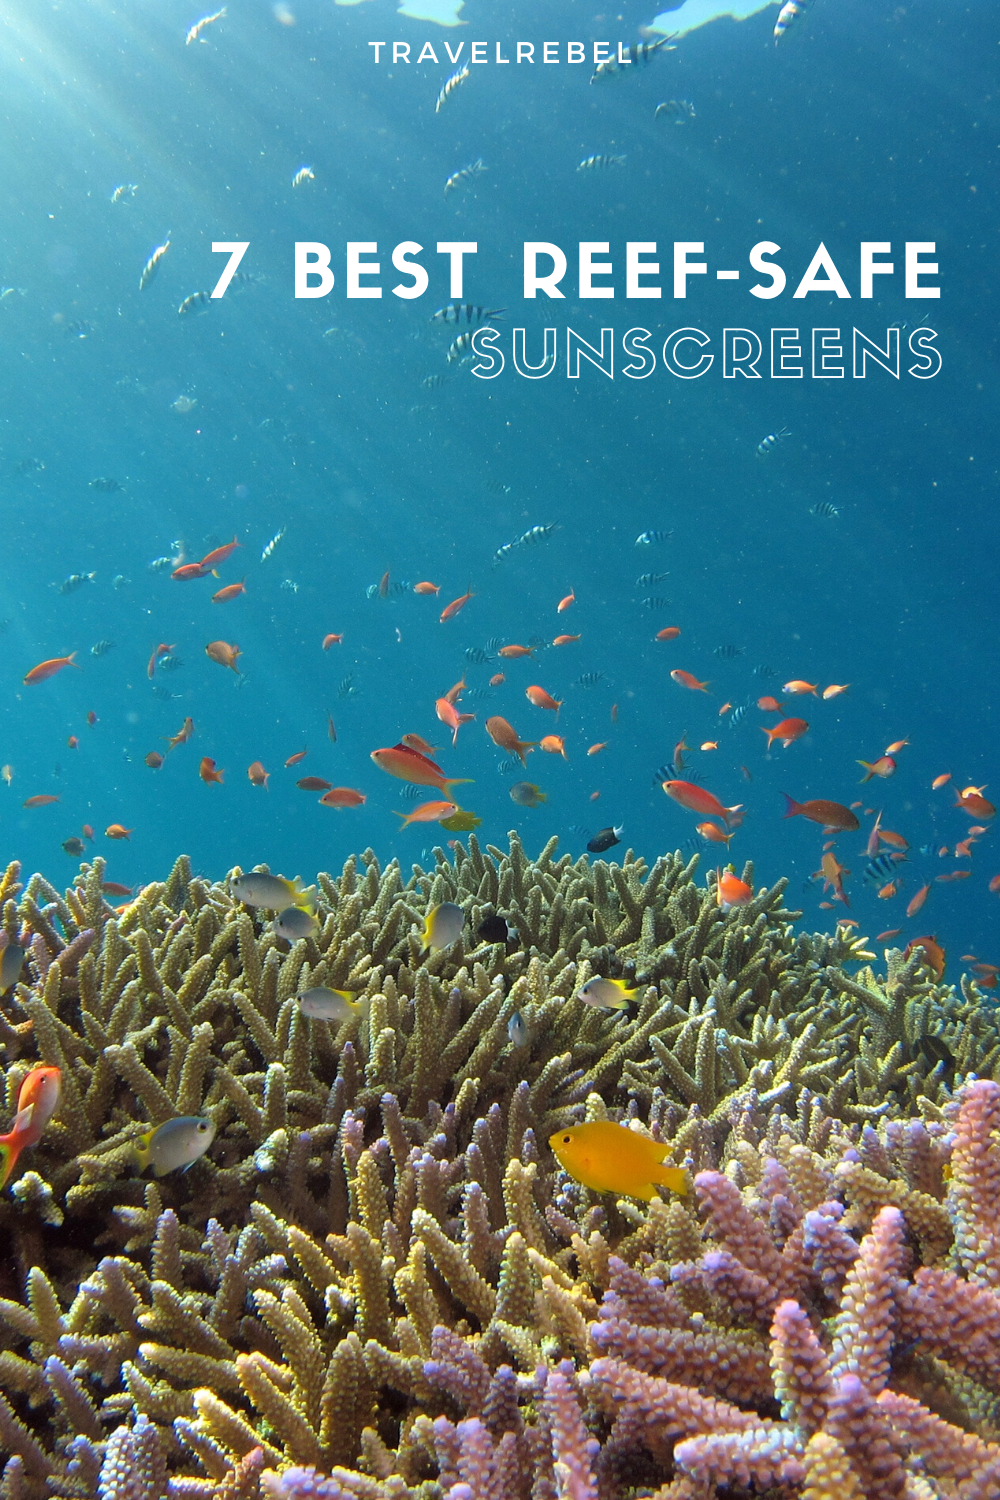 Best reef-safe sunscreens